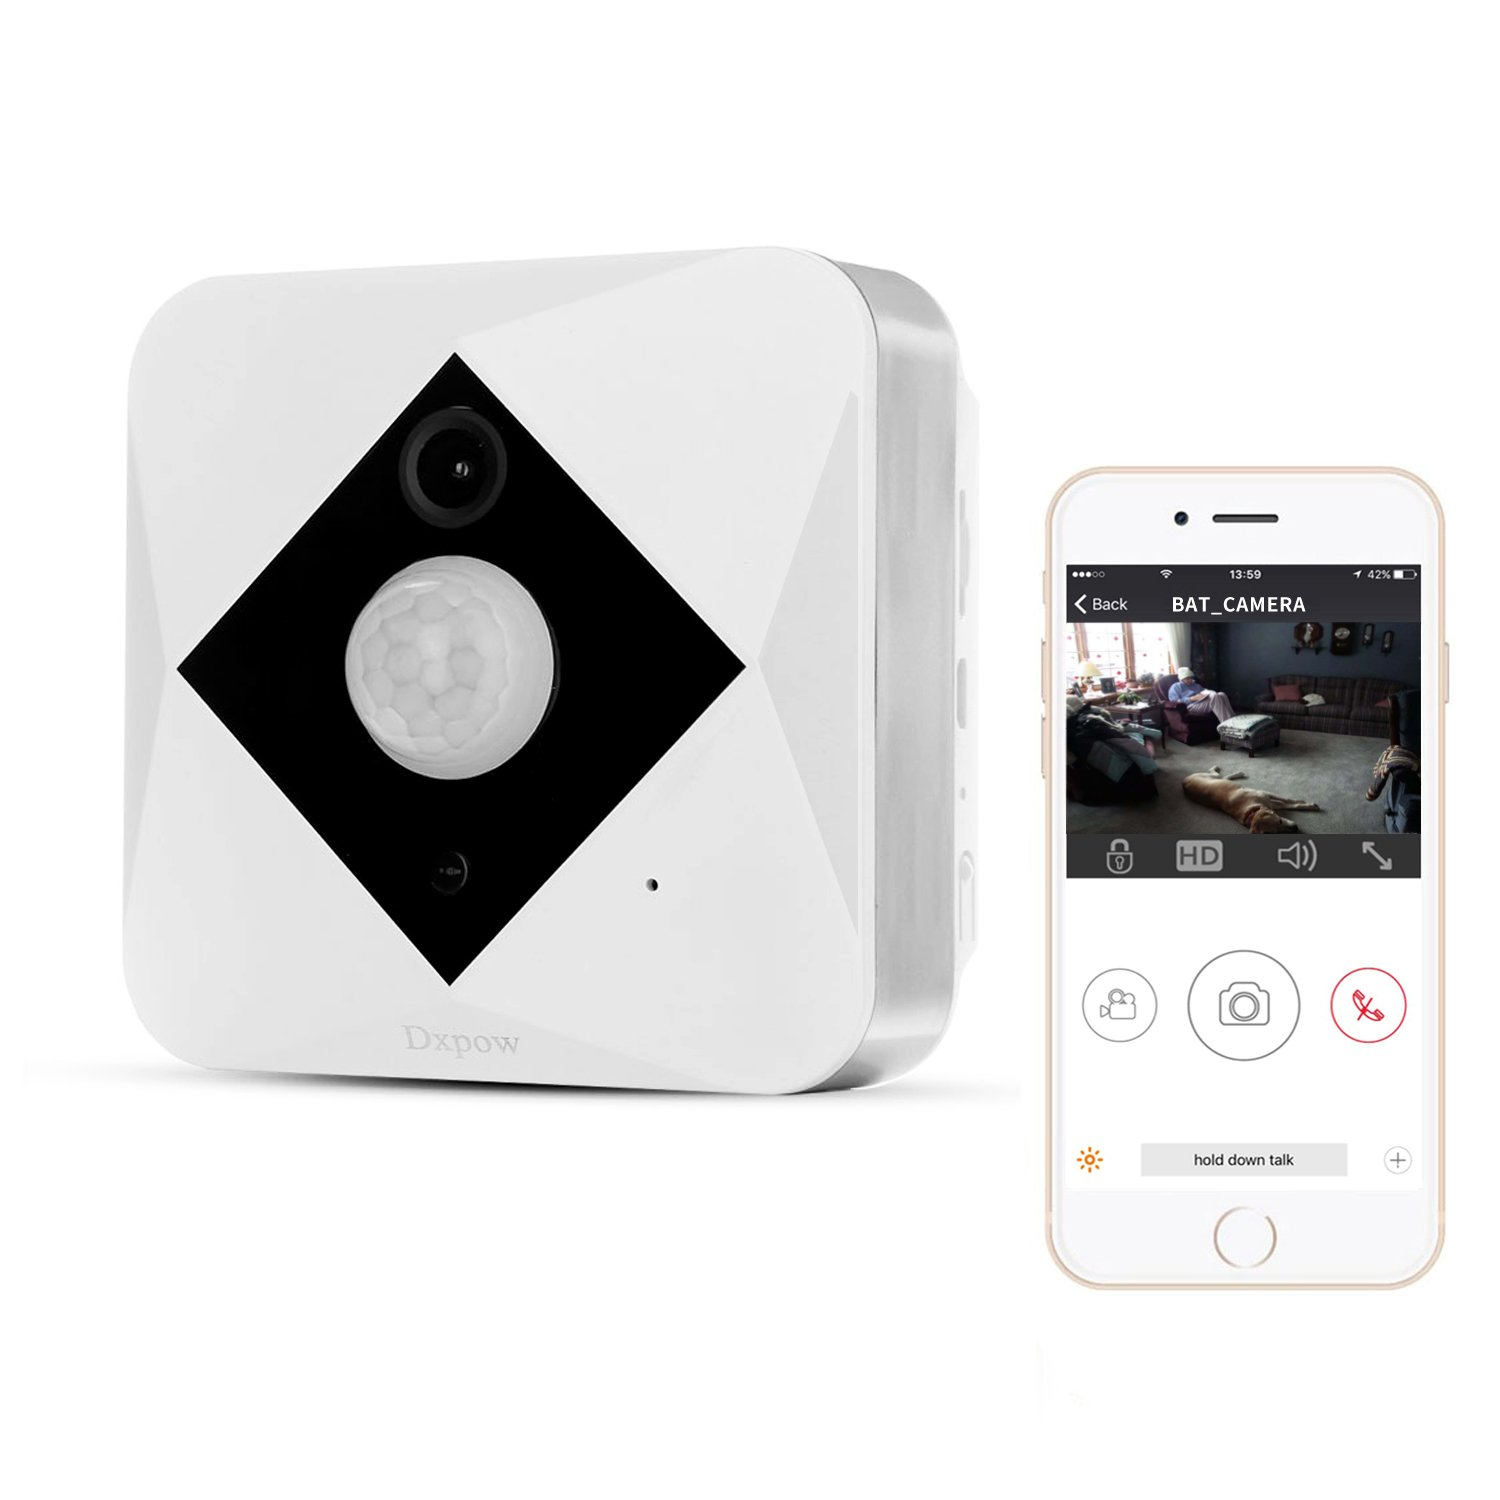 Dxpow Wireless Security Camera, 960P Smart Home WiFi Security Camera System with PIR Motion Detection, HD Video, Battery-Powered, 2-Way Audio, Night Vision Alerts Video Camera for Your Smartphone